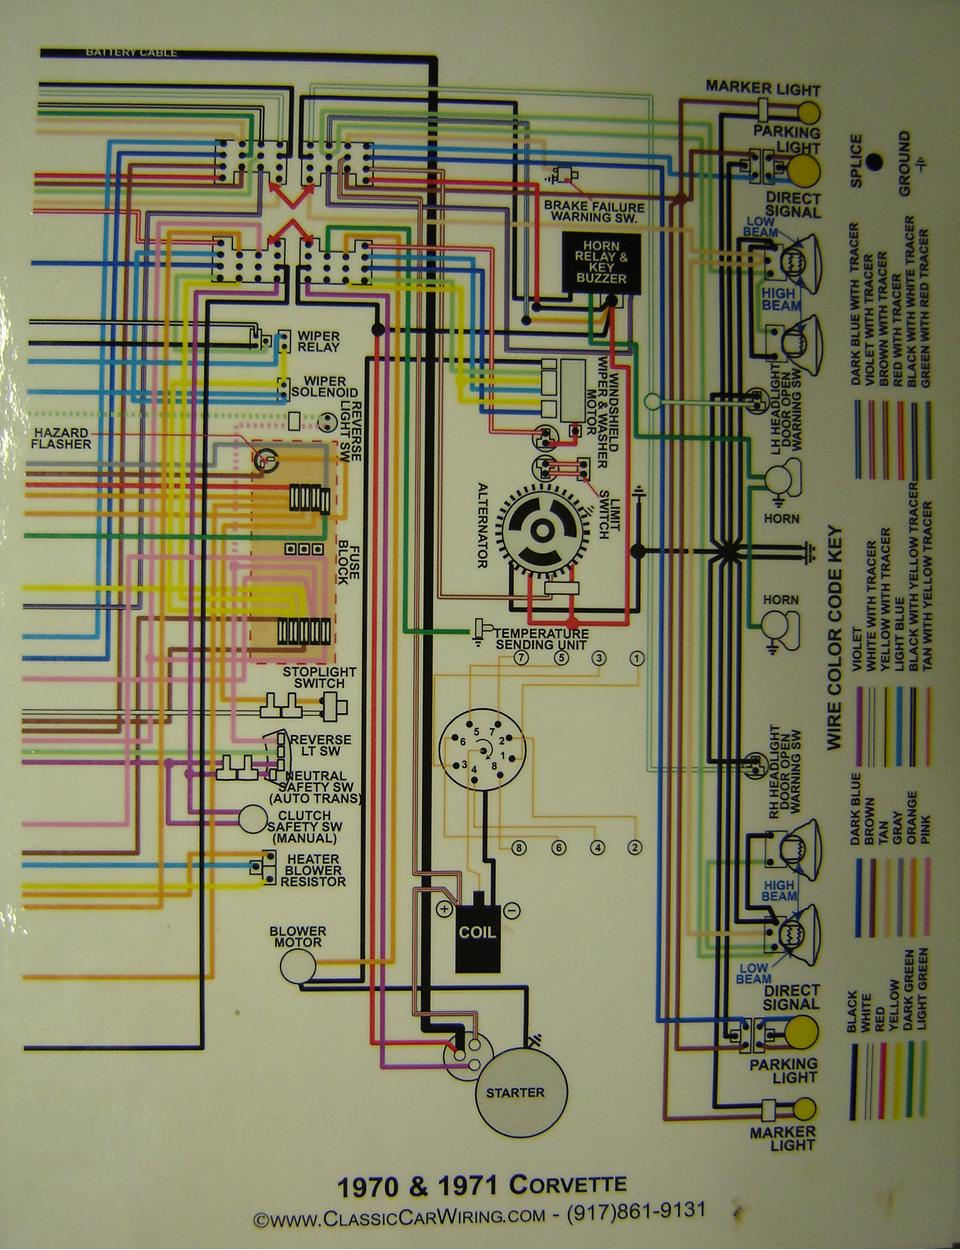 1970 71 corvette color wiring diagram B chevy diagrams c3 corvette wiring diagram at gsmx.co